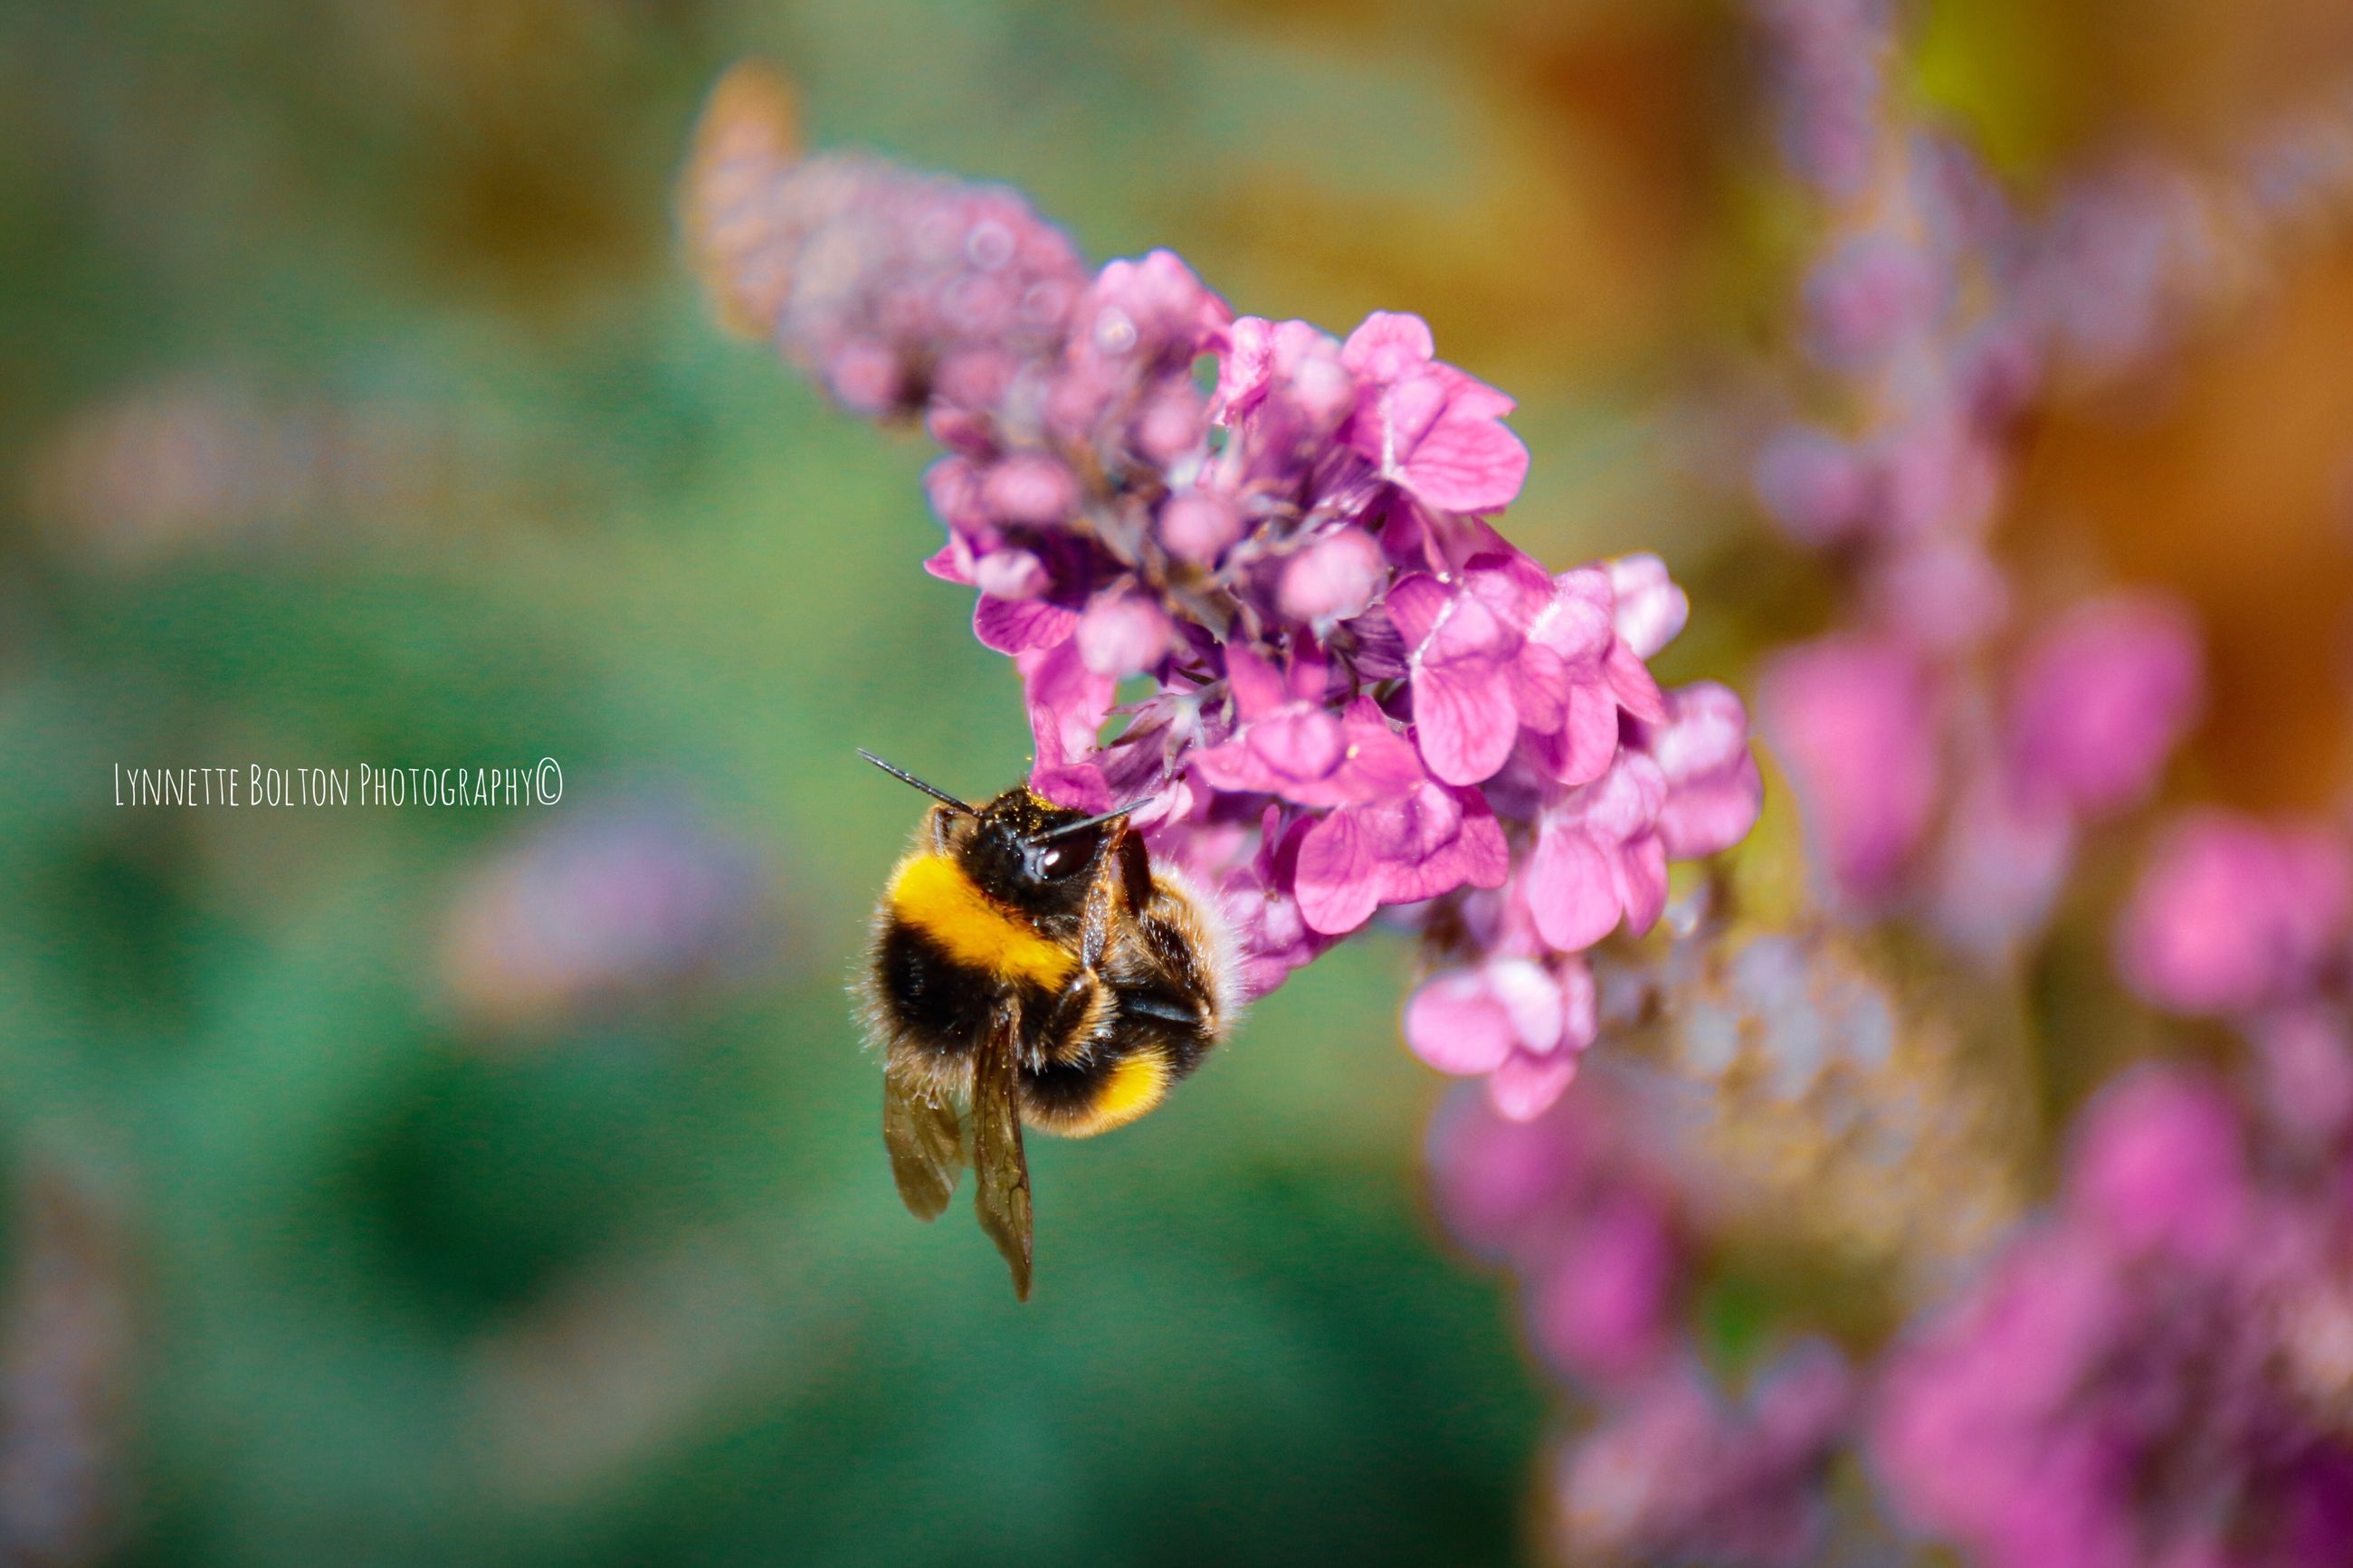 flower, flowering plant, invertebrate, animals in the wild, animal themes, one animal, animal, animal wildlife, insect, beauty in nature, fragility, plant, vulnerability, bee, petal, growth, close-up, flower head, freshness, focus on foreground, pollination, pink color, no people, bumblebee, outdoors, purple